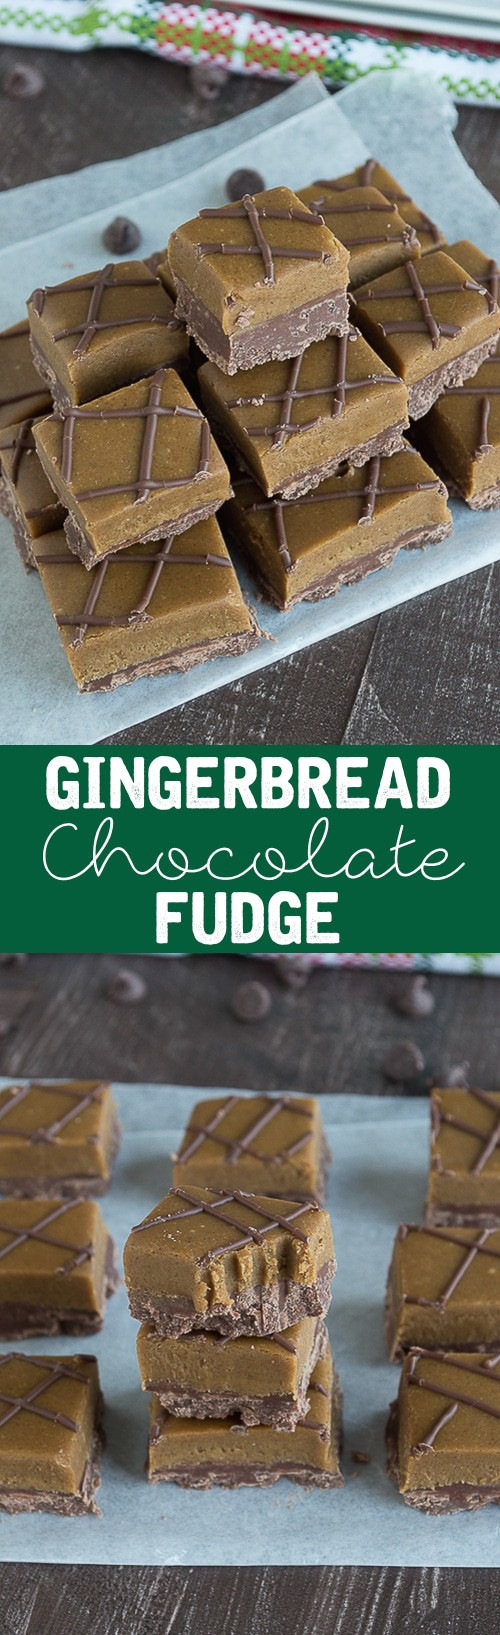 A rich chocolate fudge layer on the bottom and a sweet & spicy gingerbread fudge on top! This is perfect for the Holidays!